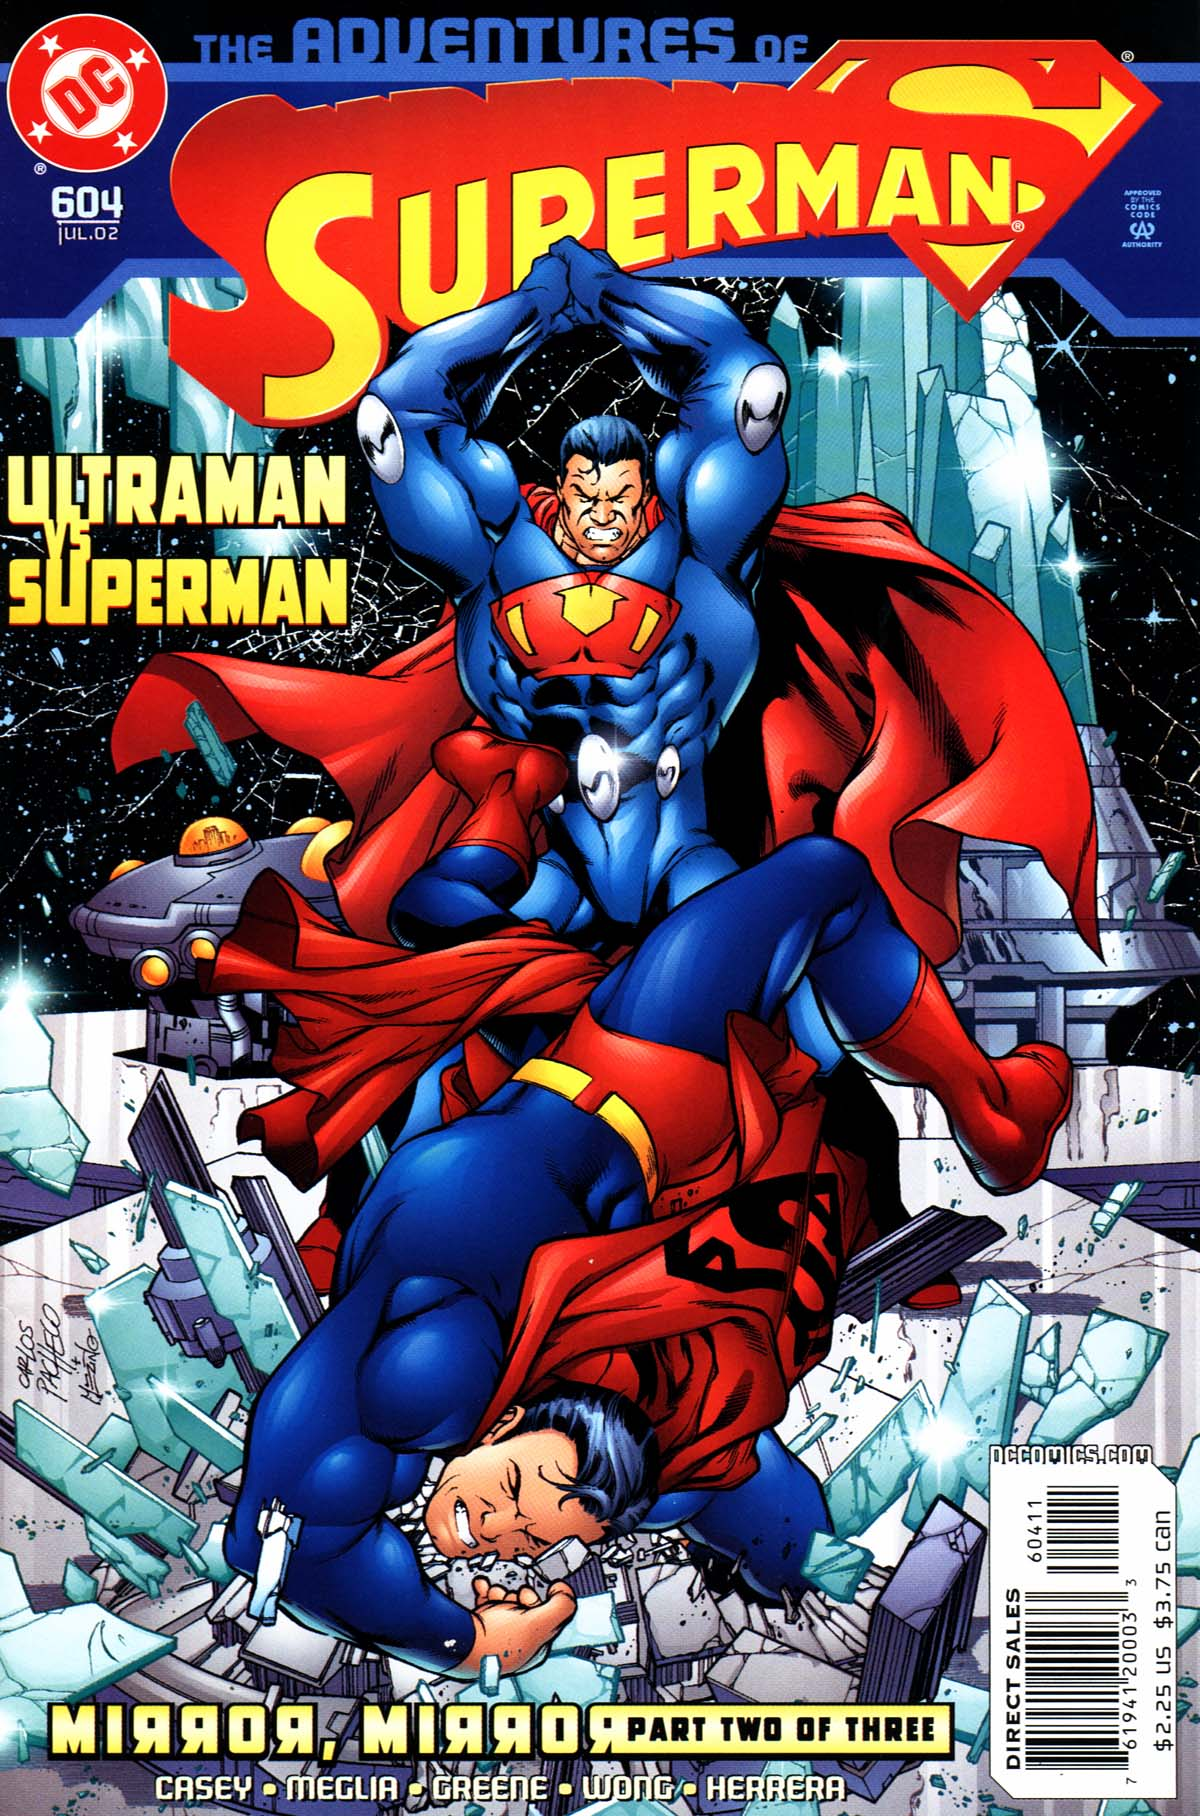 Read online Adventures of Superman (1987) comic -  Issue #604 - 1